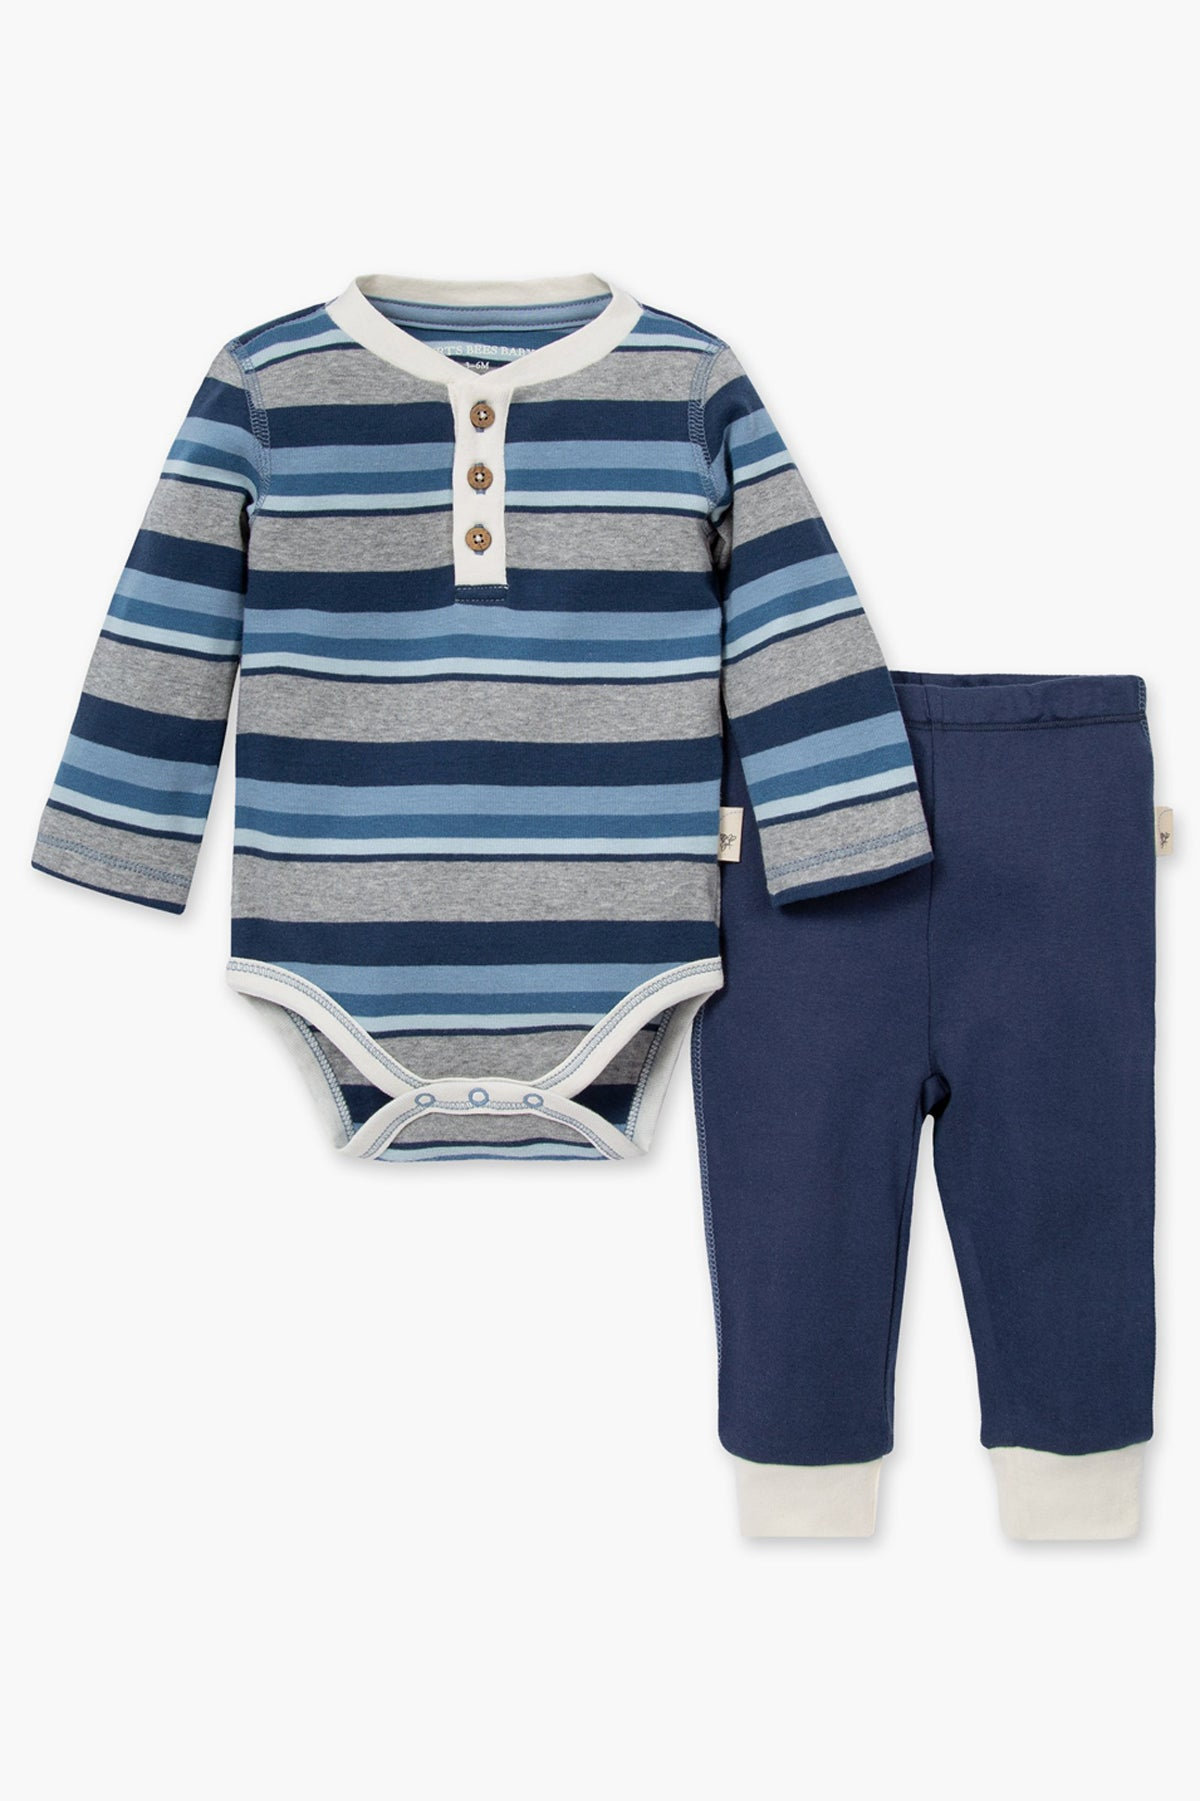 Burt's Bees Foothills Onesie And Baby Pants Set